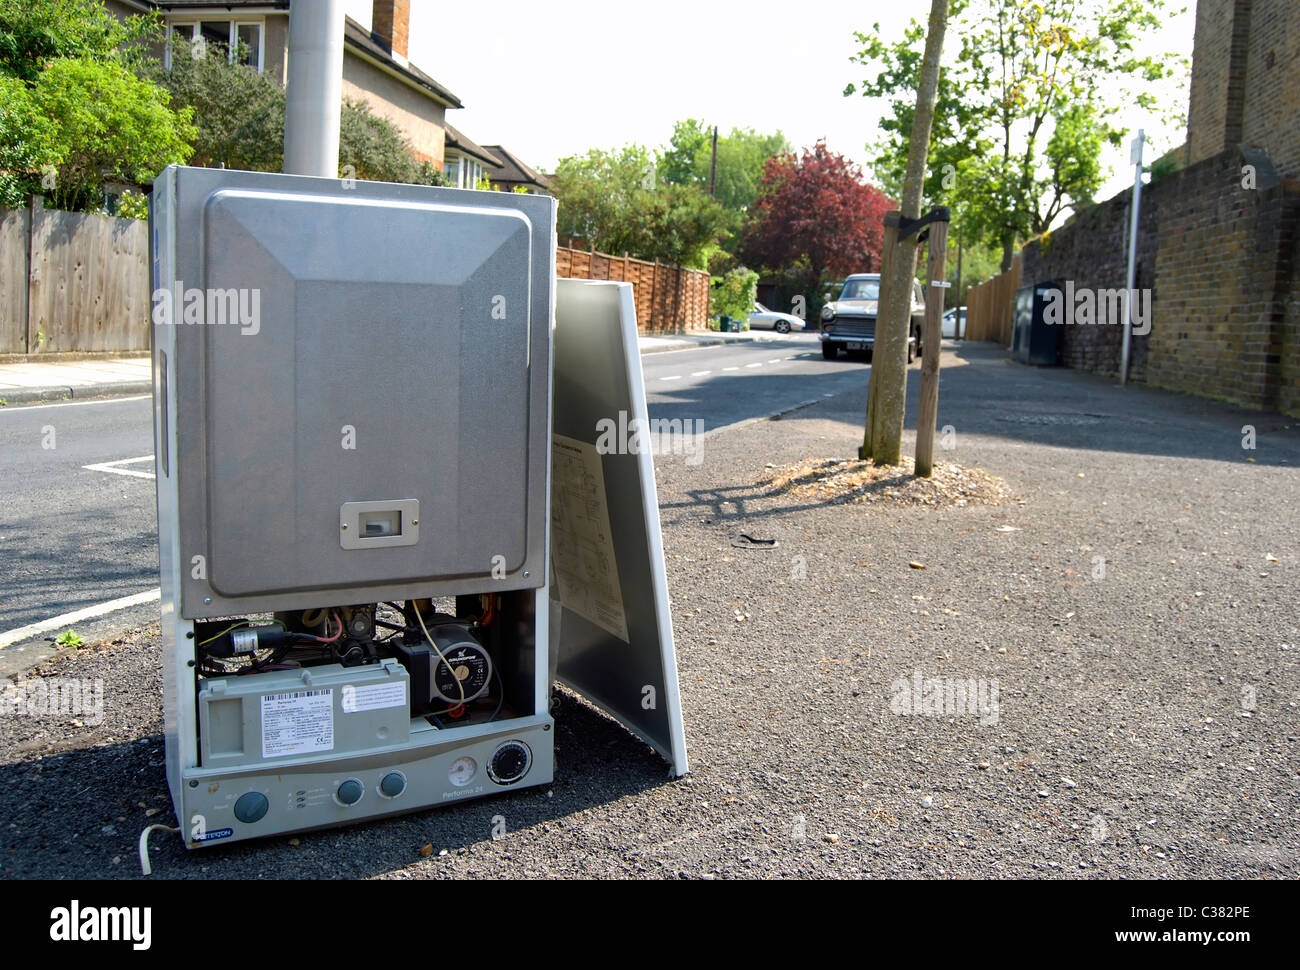 domestic gas boiler dumped in a residential street in twickenham, middlesex, england - Stock Image